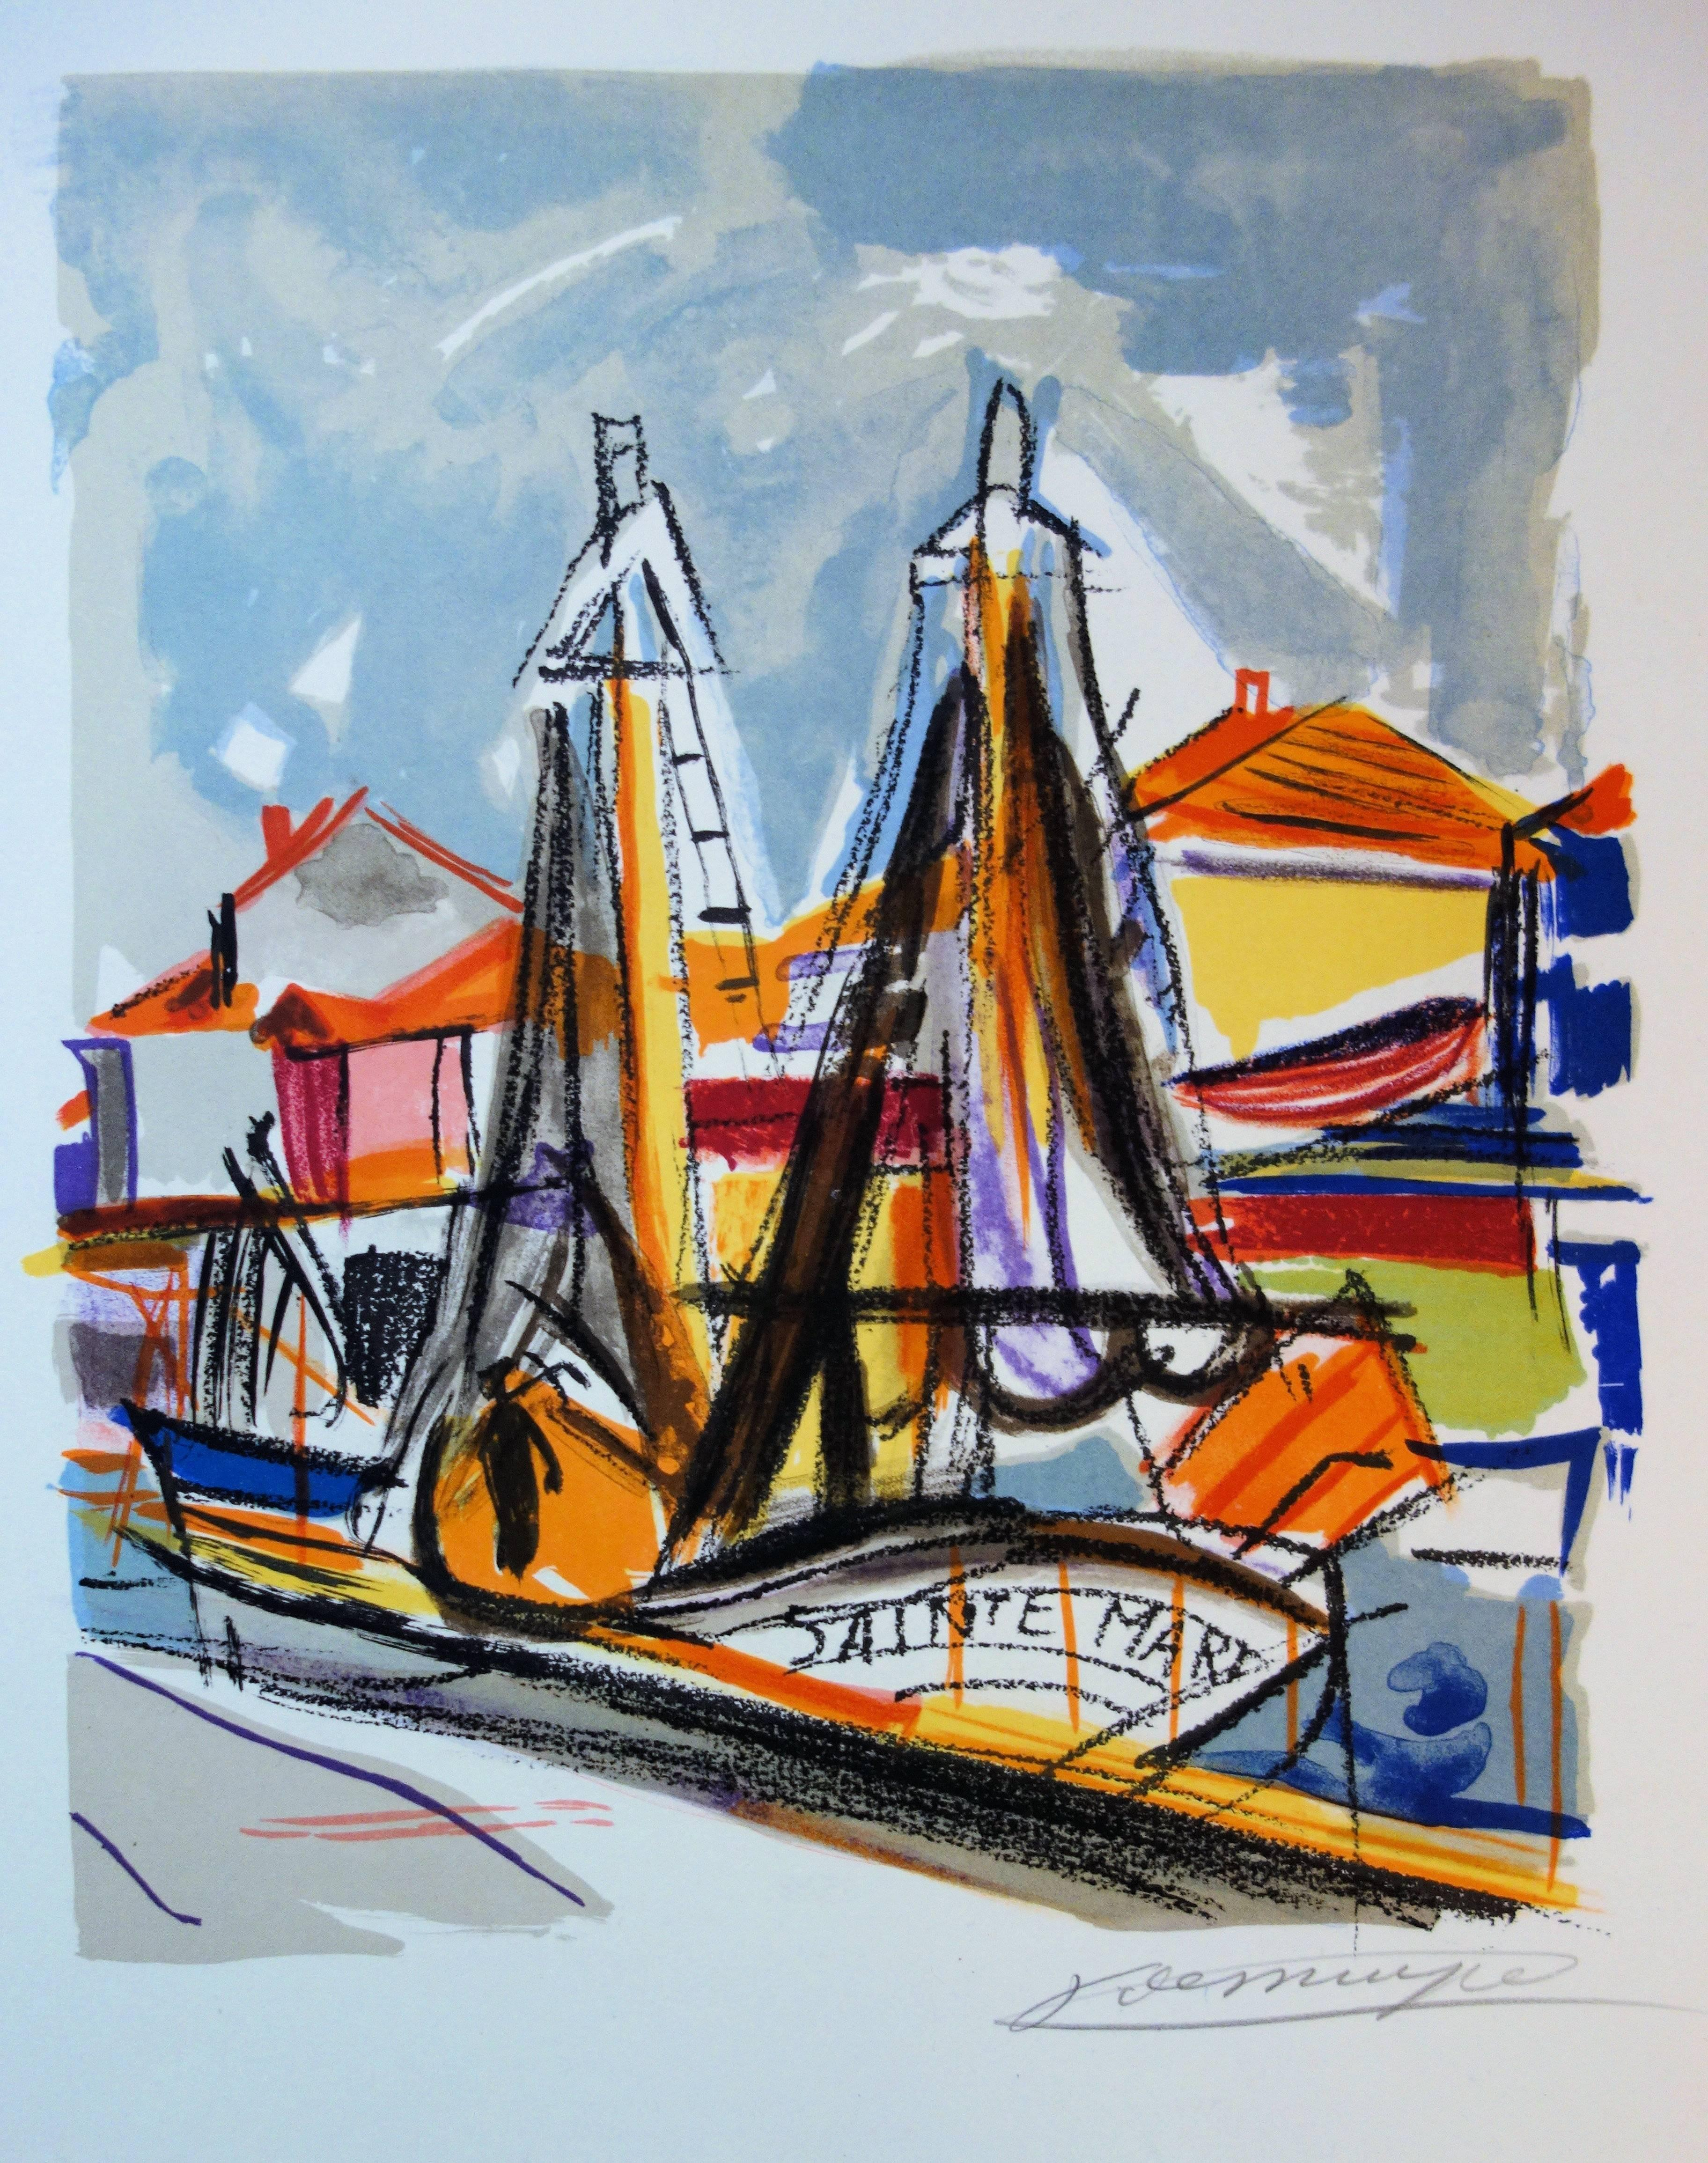 Brittain Small Harbour - Original handsigned lithograph